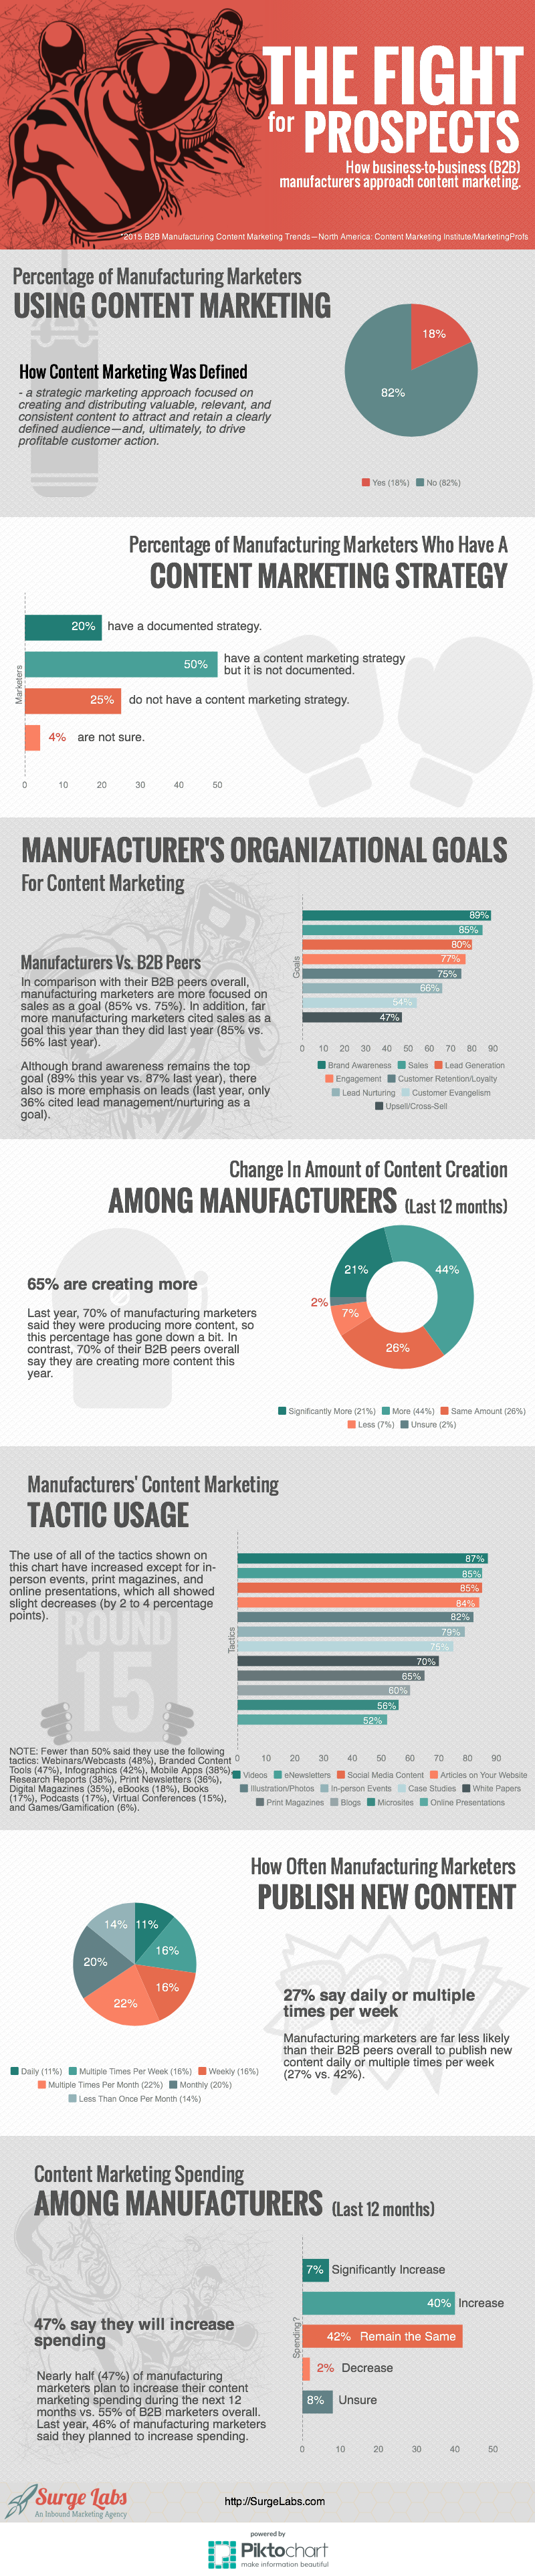 Manufacturing Content Marketing-2